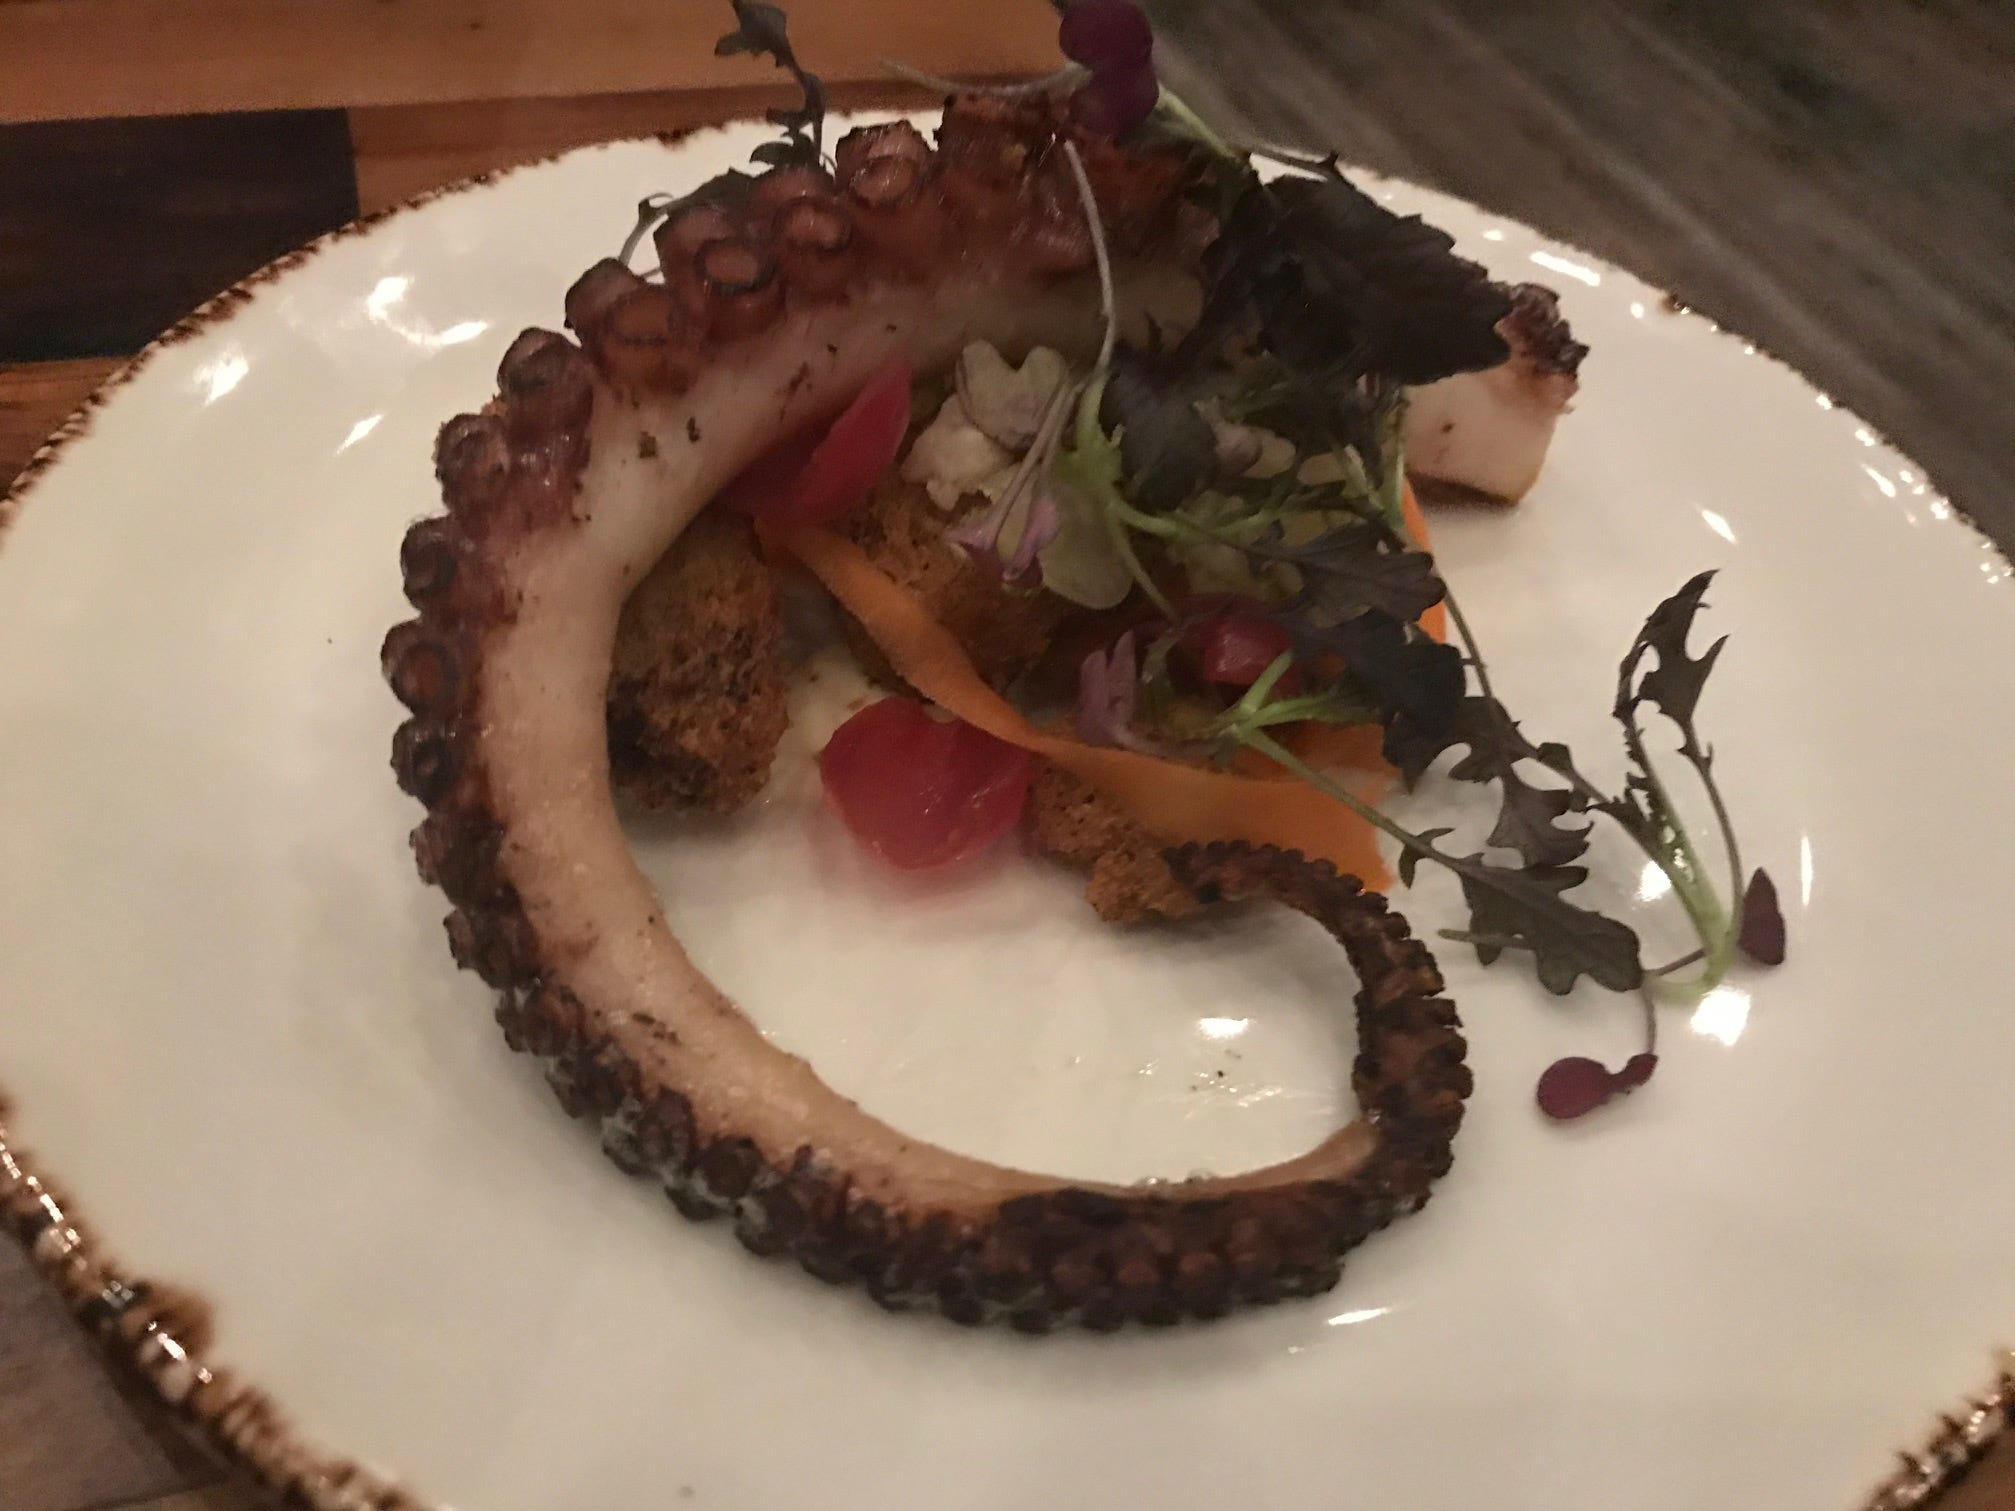 Octopus at Felina